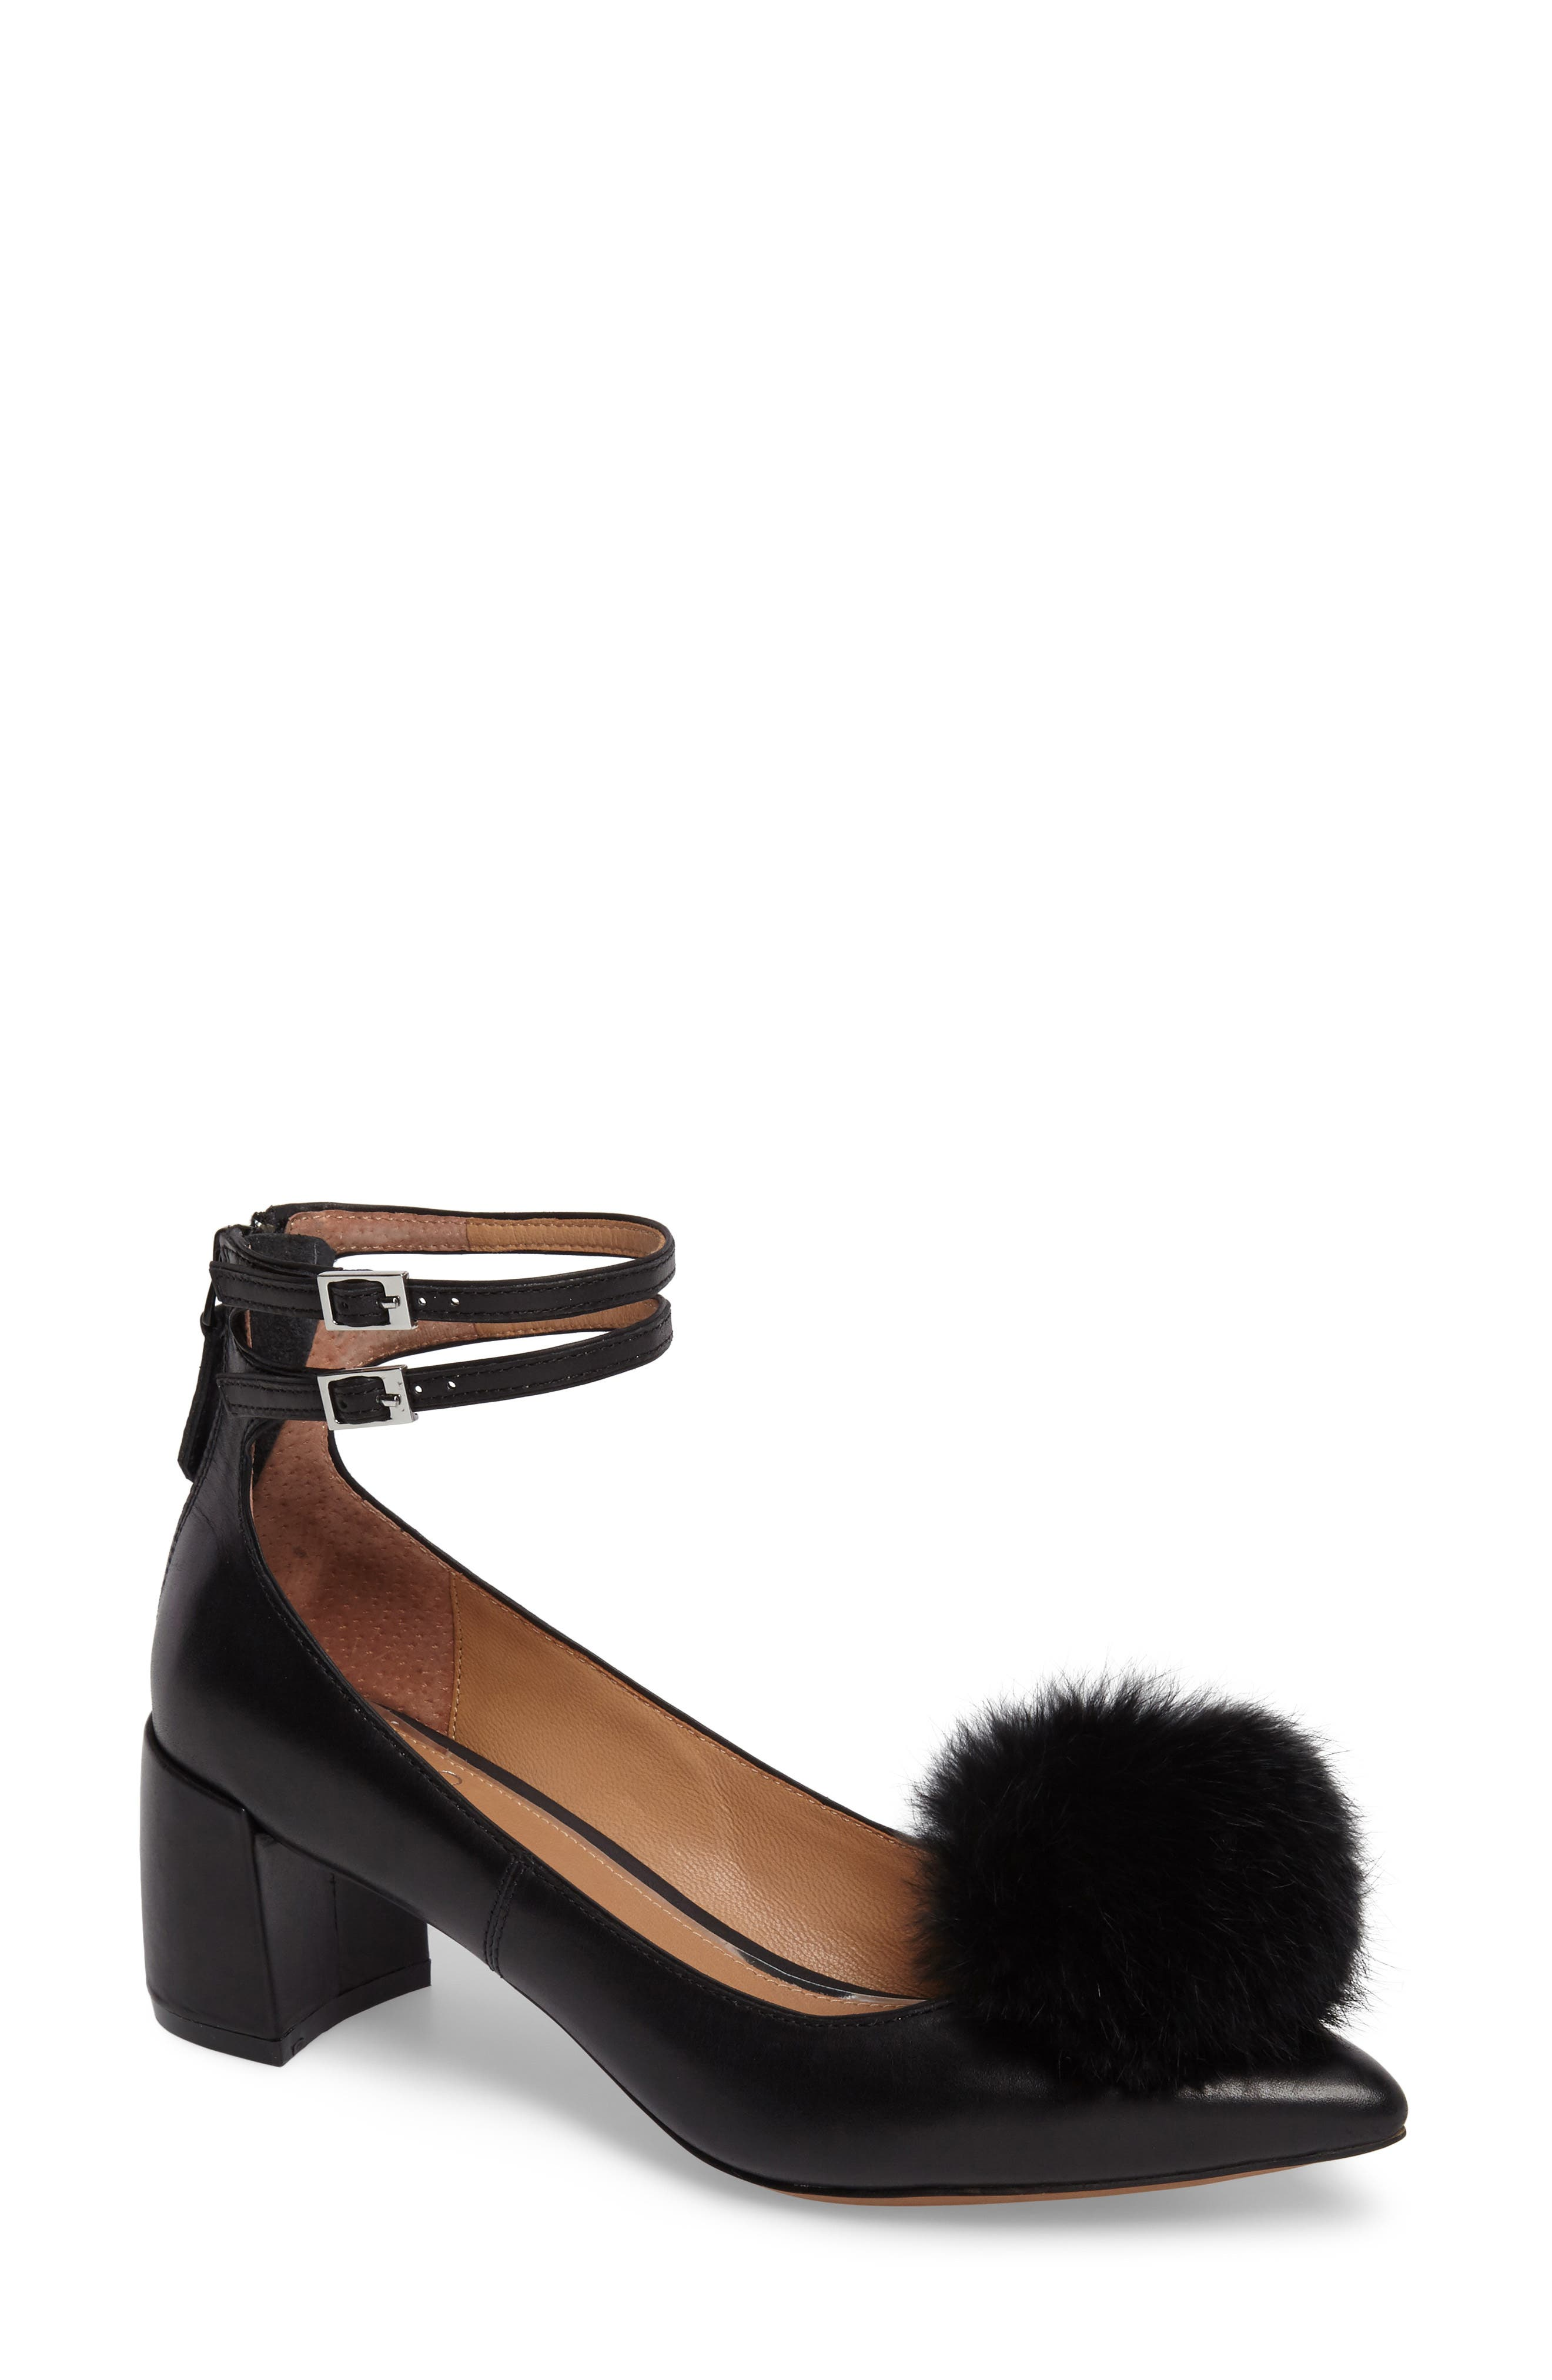 Nadine Ankle Strap Pump,                             Main thumbnail 1, color,                             Black Leather